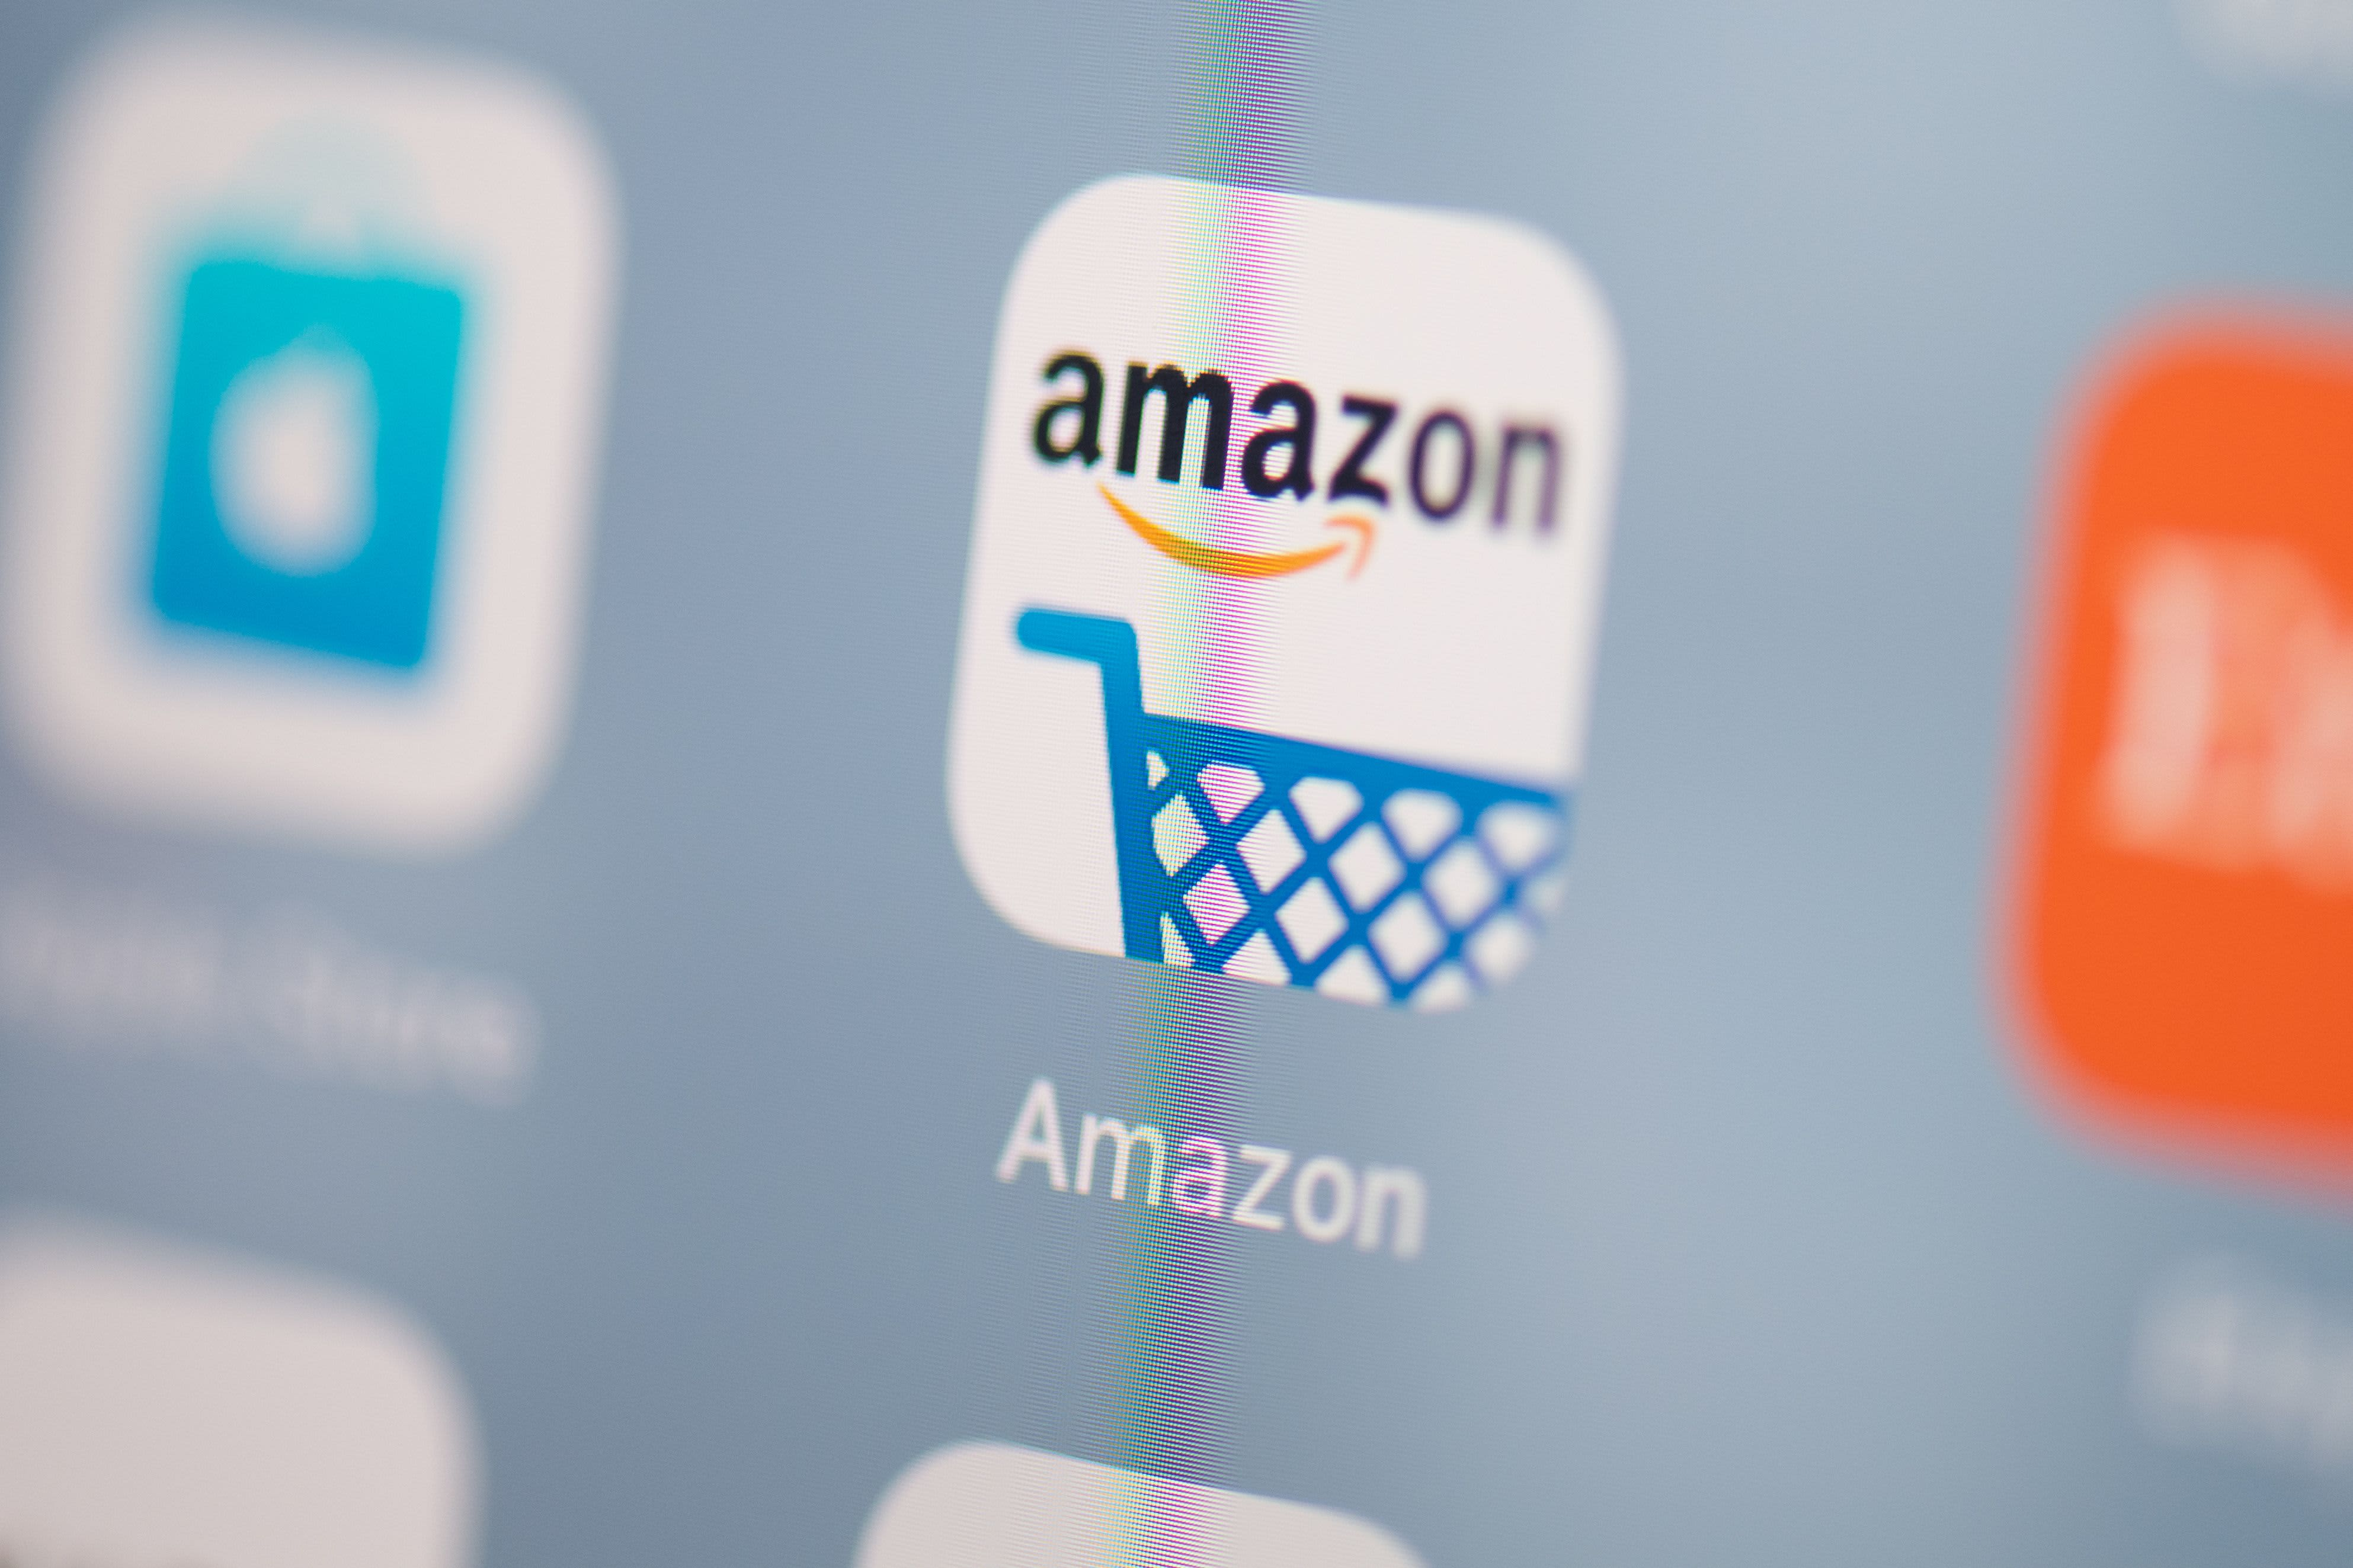 Techmeme: Amazon raises seller fees by 3% for thousands of